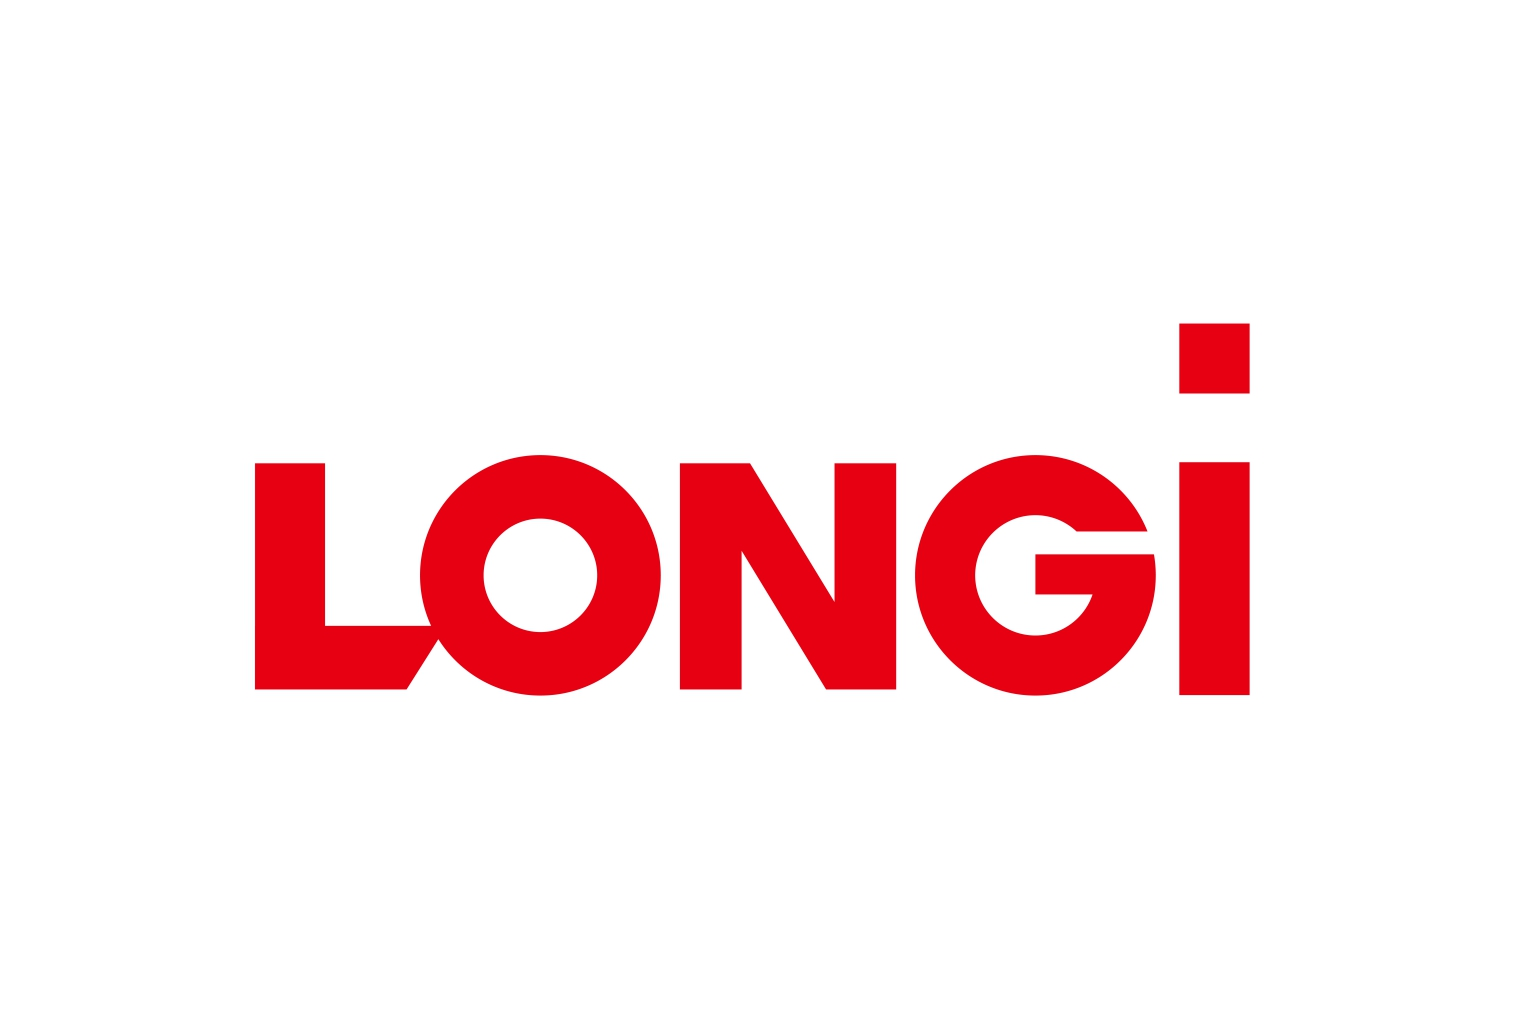 LONGi Earns Top Awards in PVEL's PV Module Reliability Scorecard and RETC's PV Module Index Report